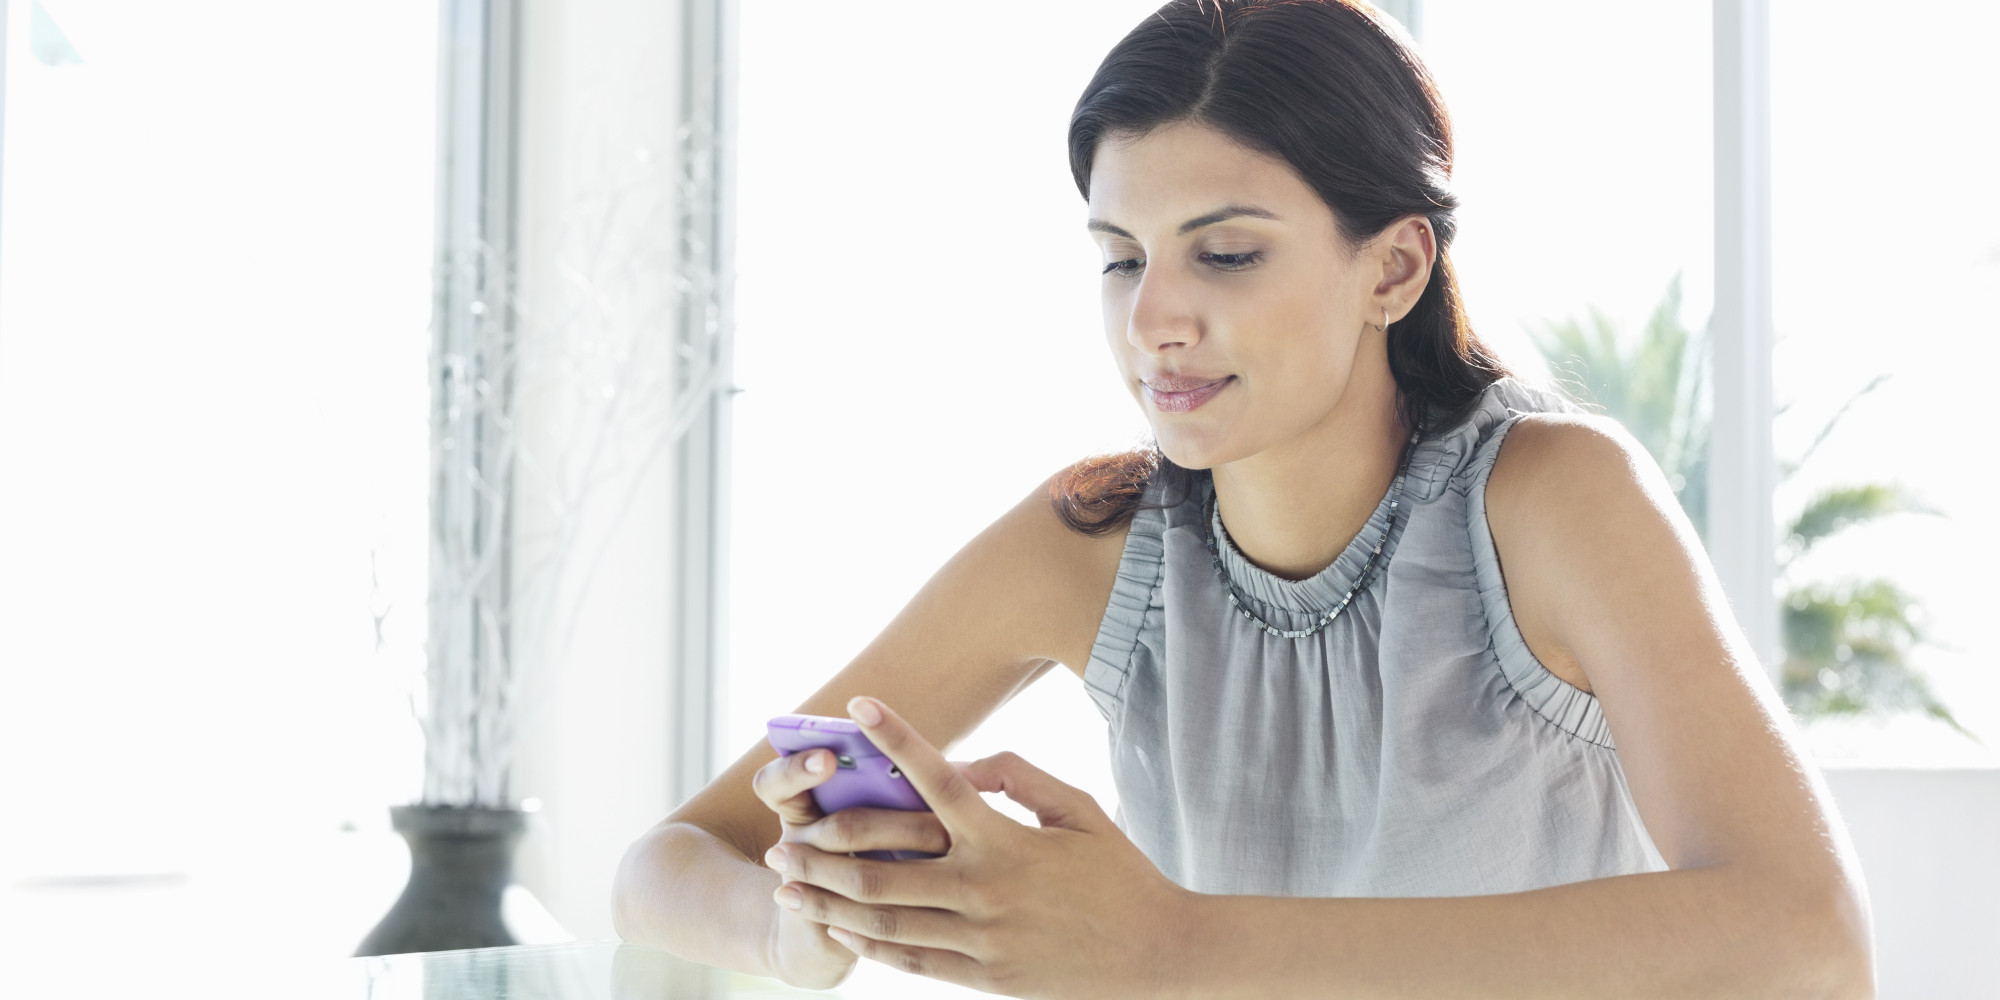 Personal loan apps can make your life easier with a quick-approval instant loan